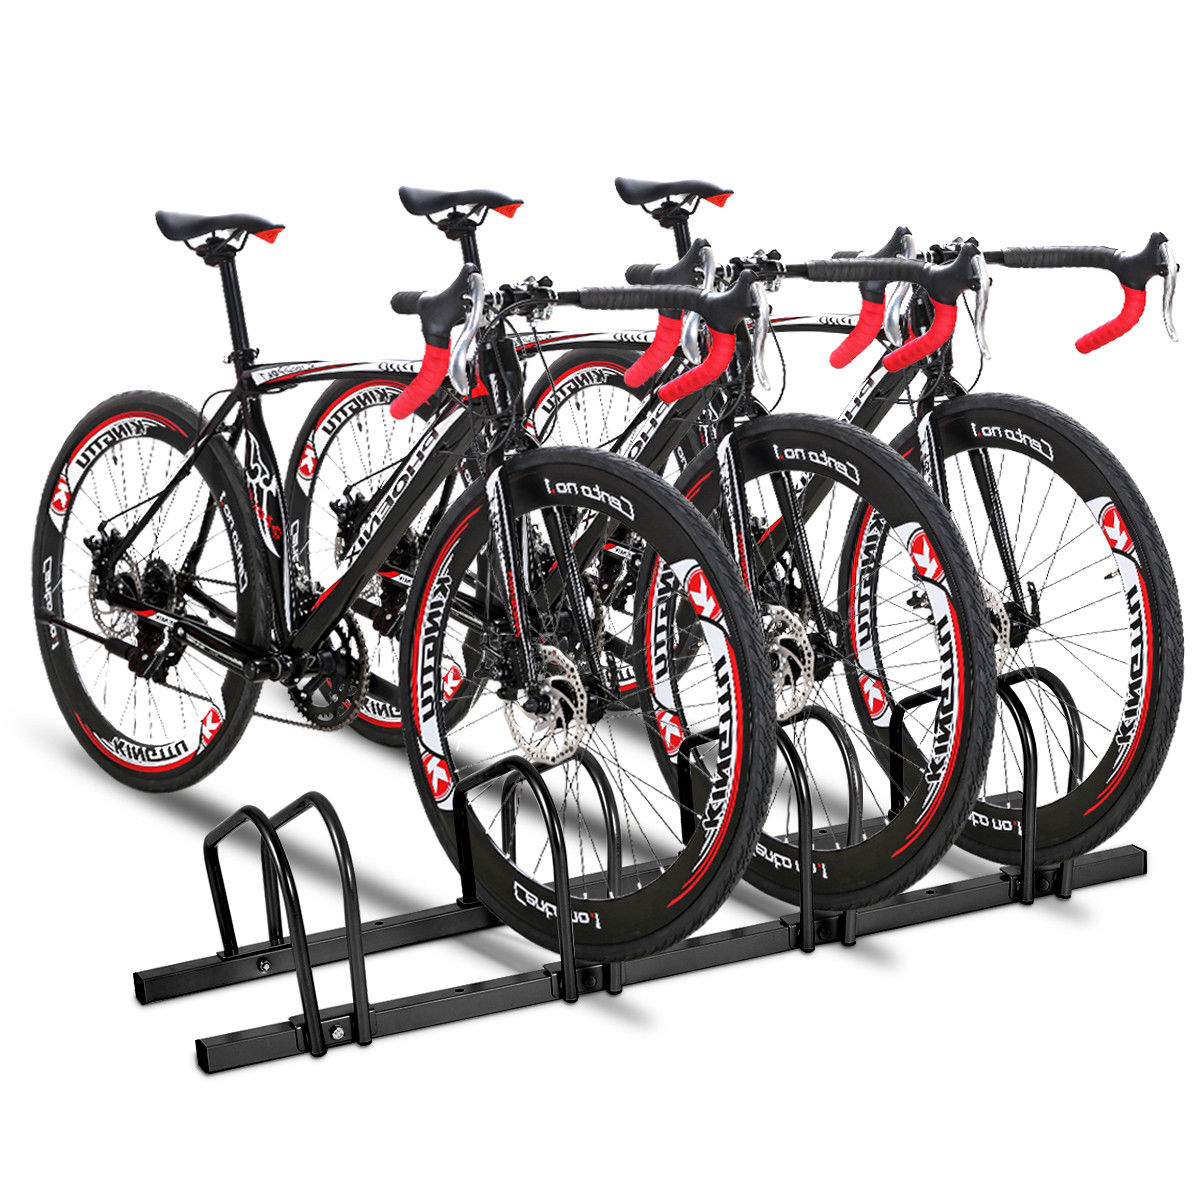 Gymax 4 Bike Bicycle Stand Parking Garage Storage Cycling Rack Black - image 4 of 10